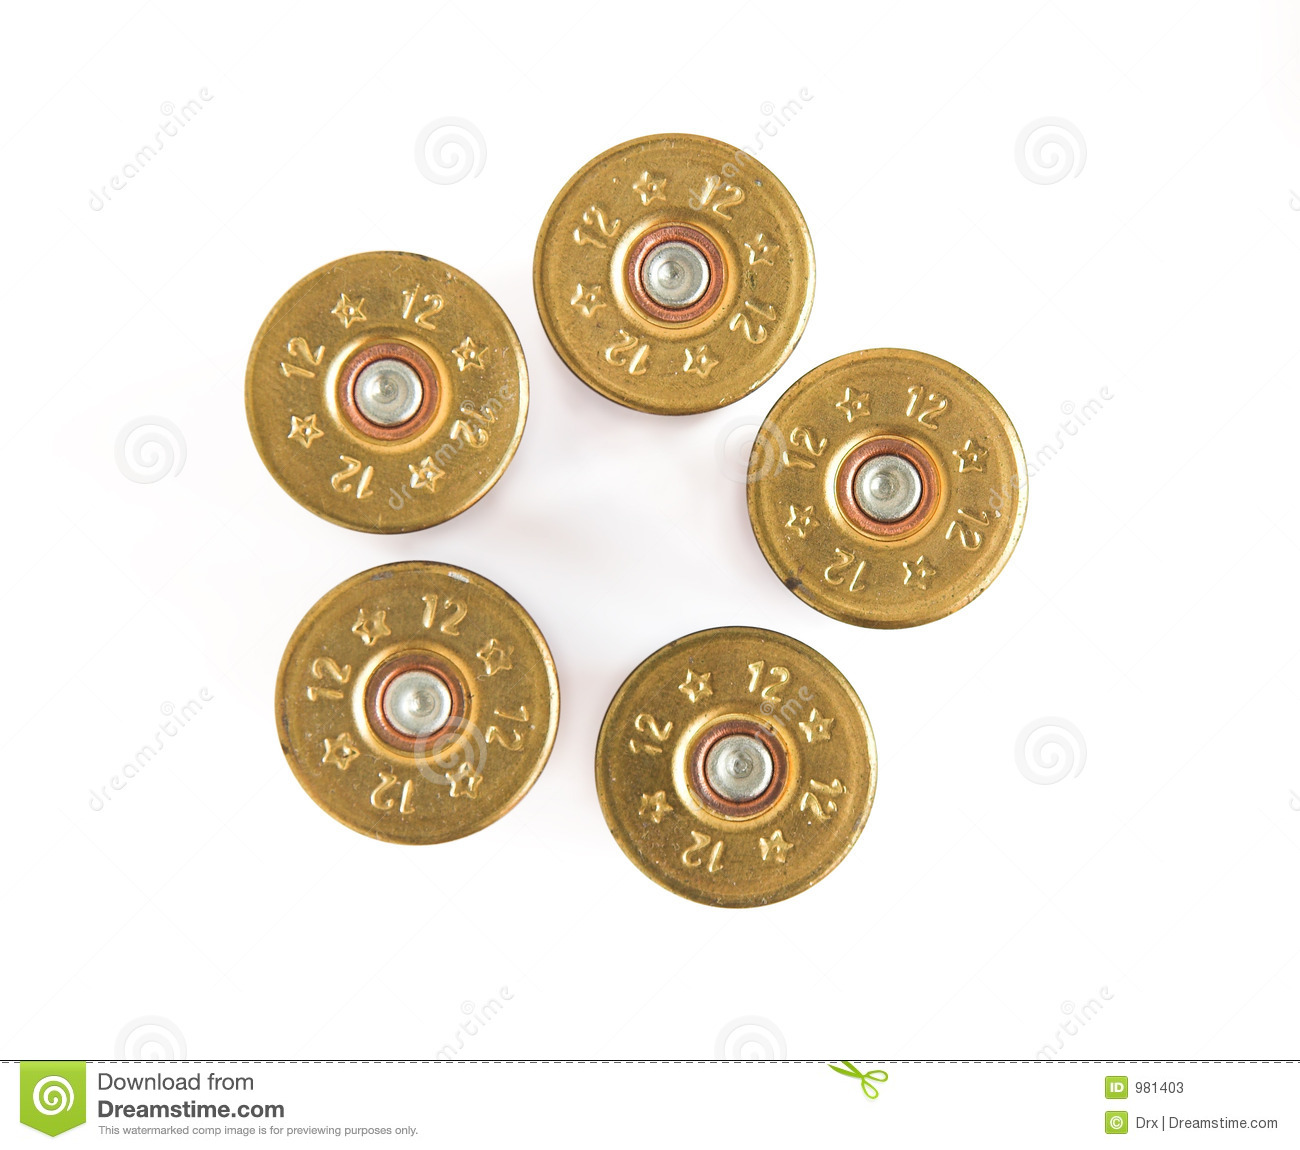 Shotgun Shells isolated. Shotgun shells in pistol bullet formation.